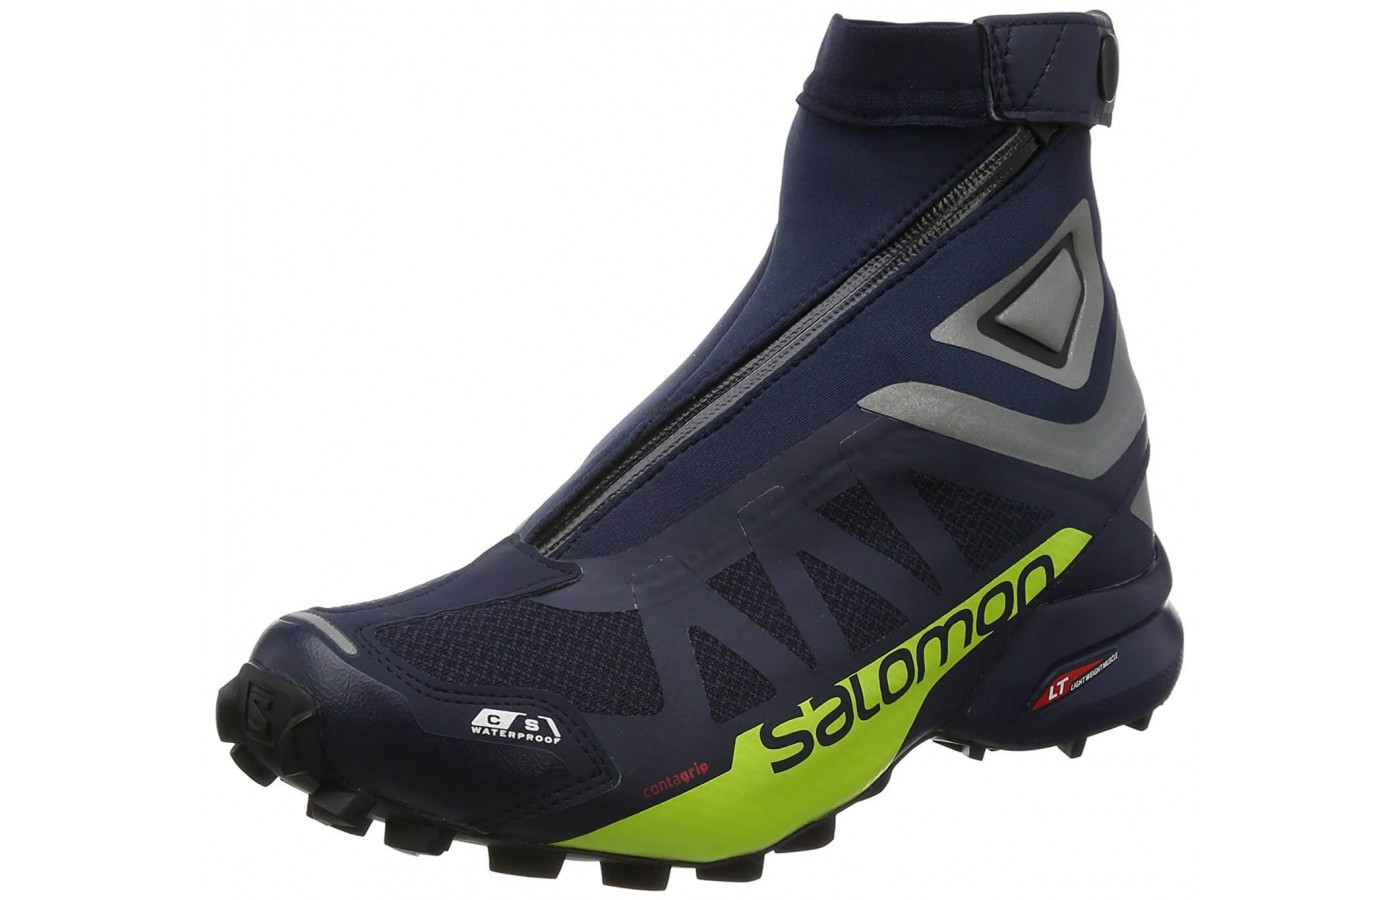 the salomon snowcross 2 has good climbing capabilities